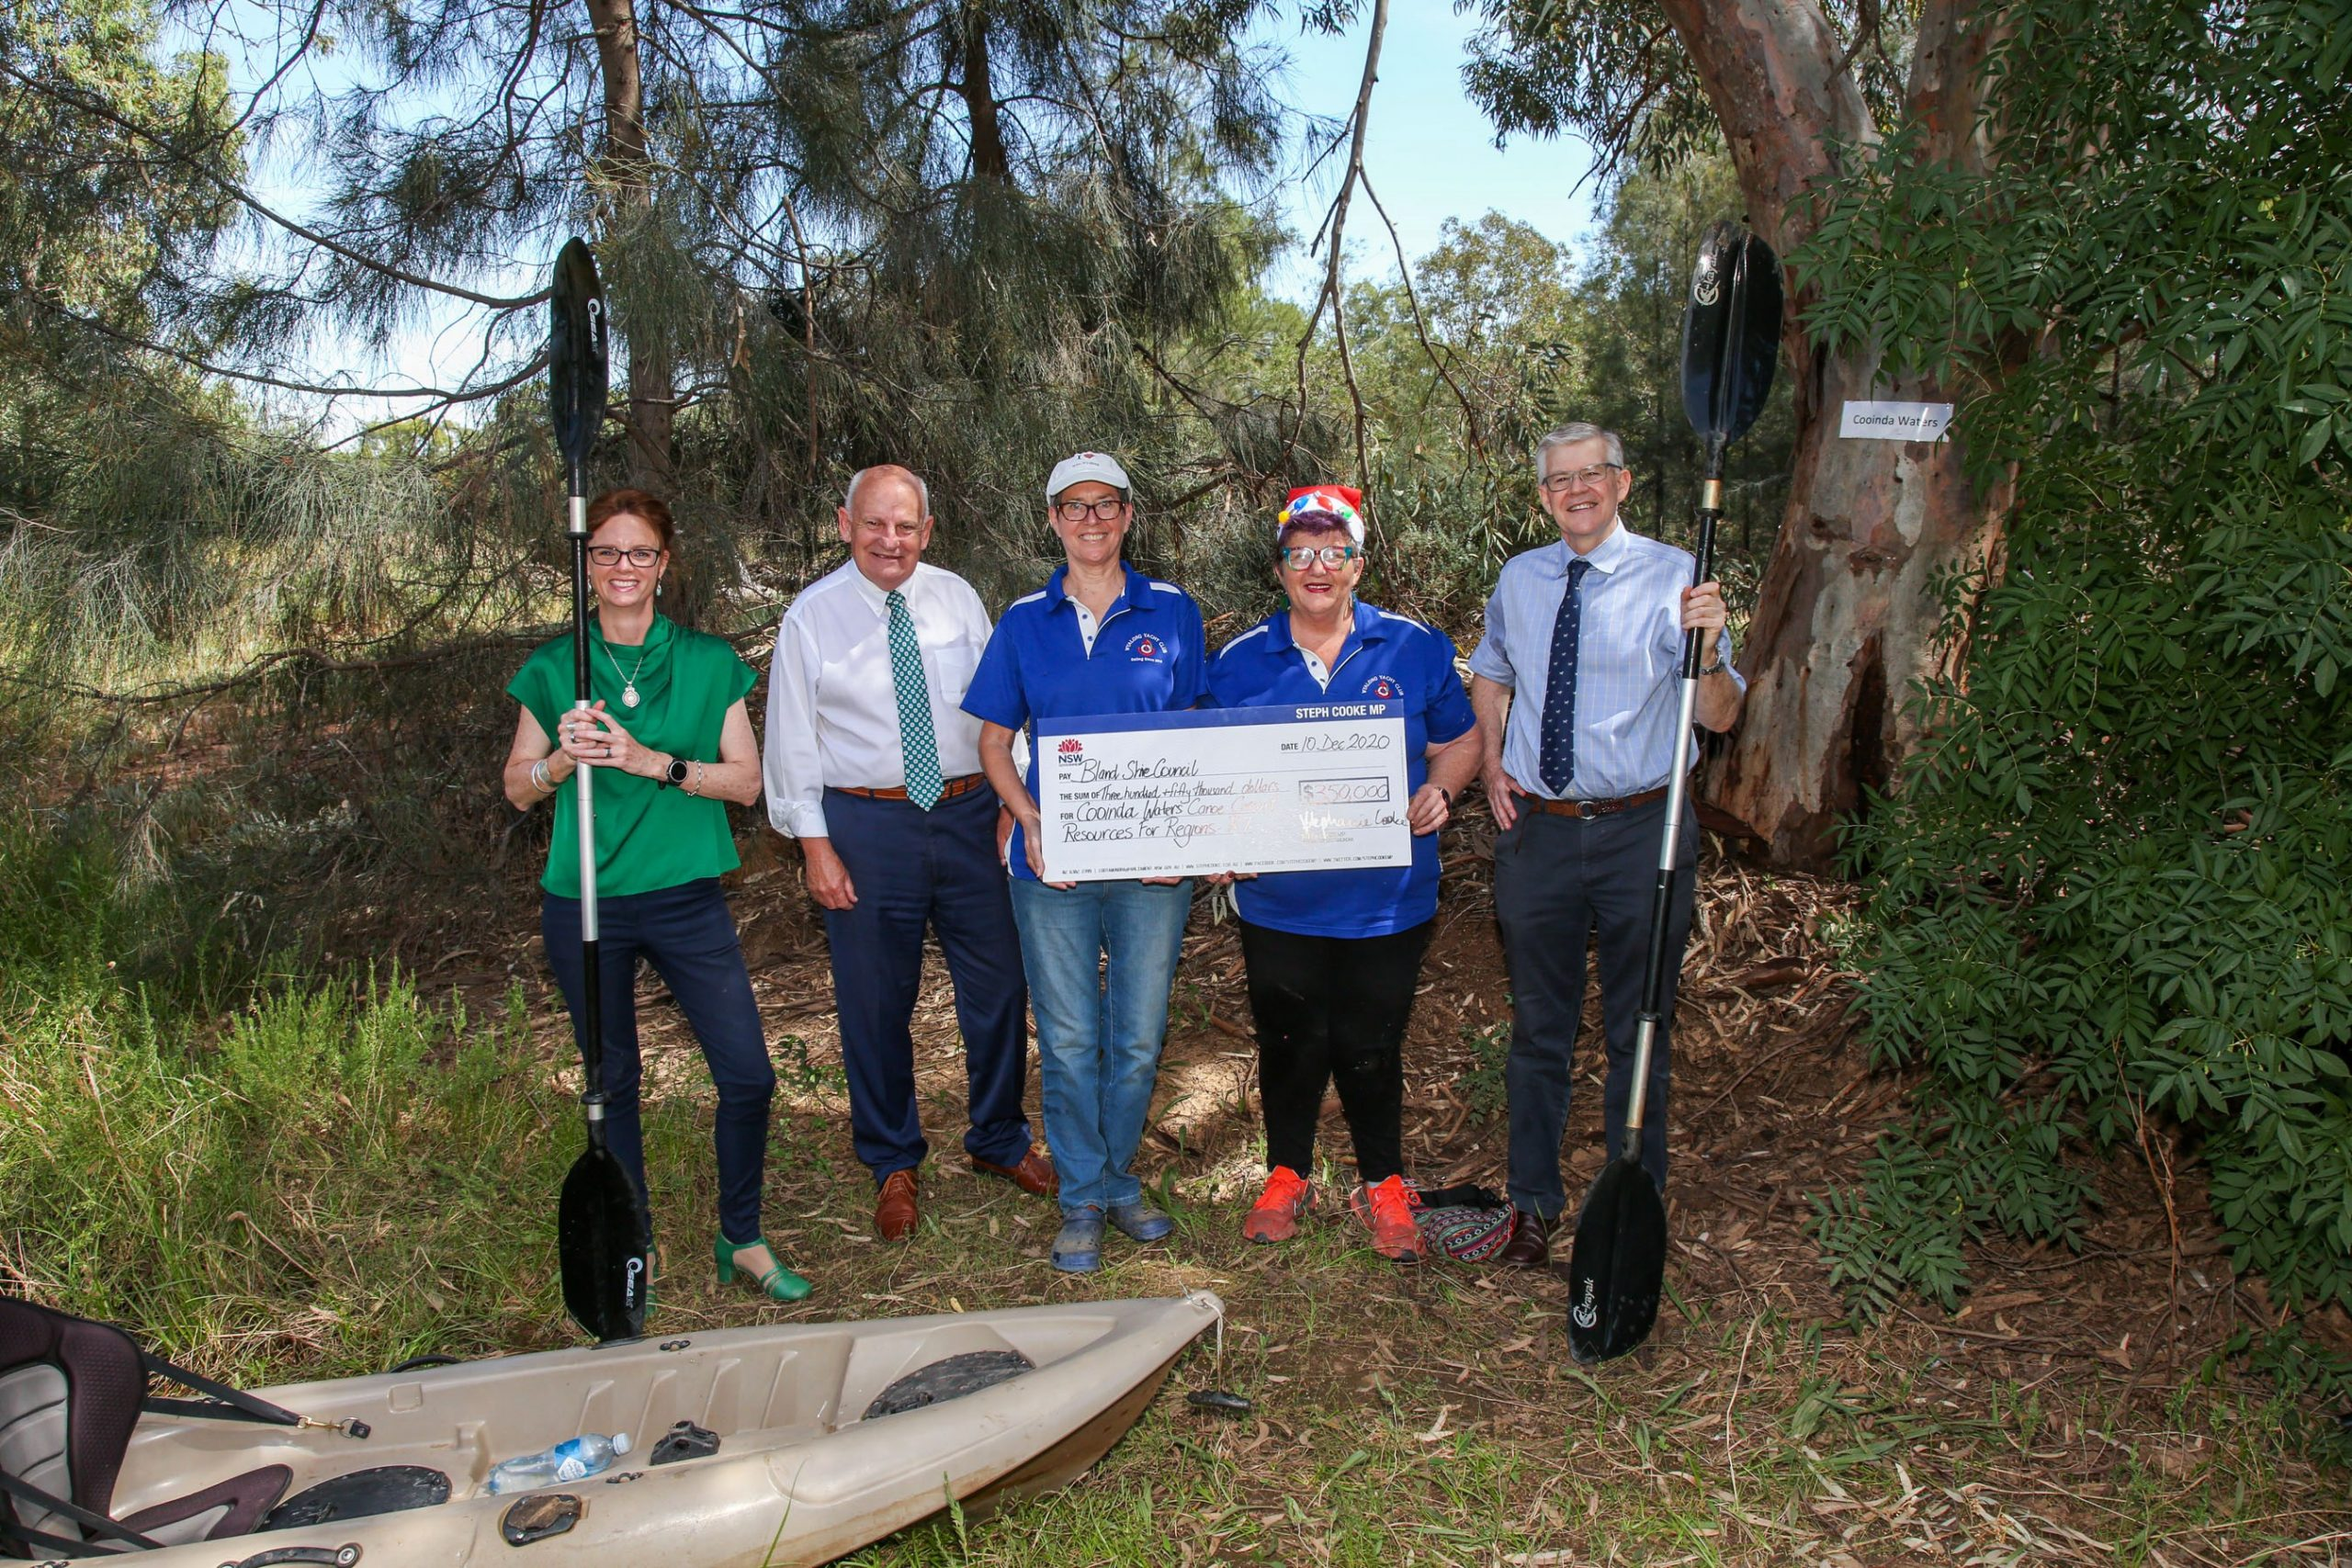 Steph Cooke, Ray Smith, Amanda Stitt, Gail Platz and Brian Monaghan stand in front of trees and a canoe is at their feet. Steph and Brian hold paddles.